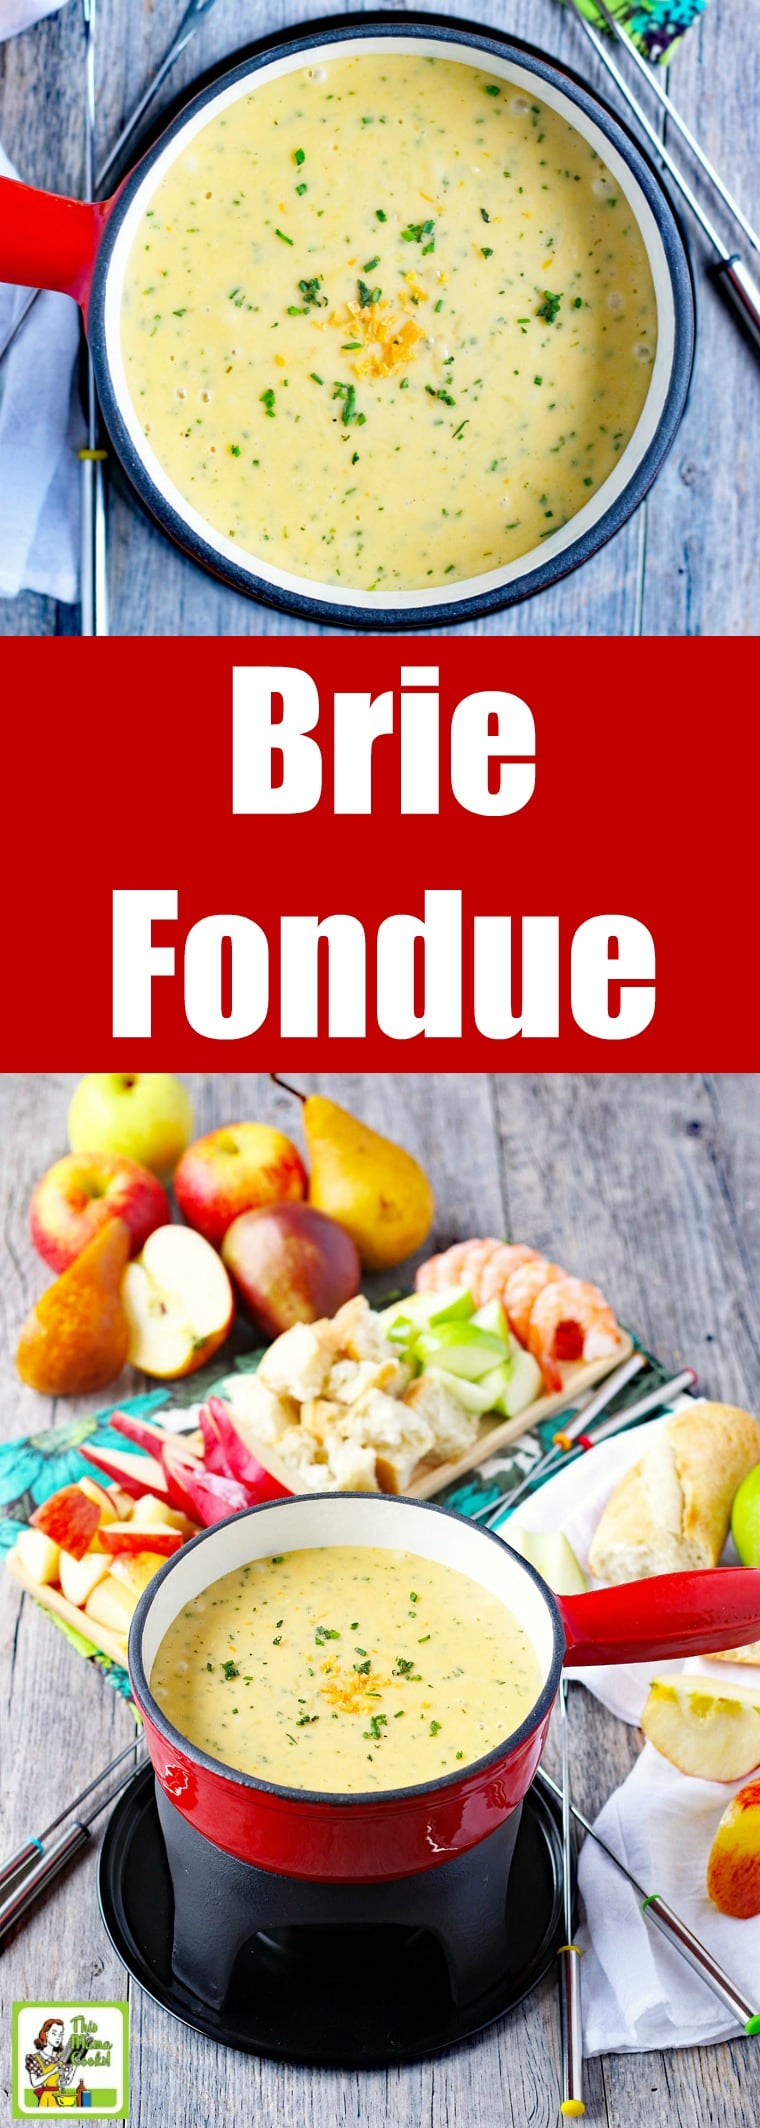 Make a pot of Brie & Chive Fondue for your next party or a romantic dinner. This brie fondue recipe is made with grapefruit juice instead of wine. Serve with cheese fondue dippers like apple and pear slices, bread, vegetables like asparagus, cherry tomatoes, and zucchini slices, and cooked shrimp. #fondue #cheese #partyfood #appetizers #appetizerrecipes